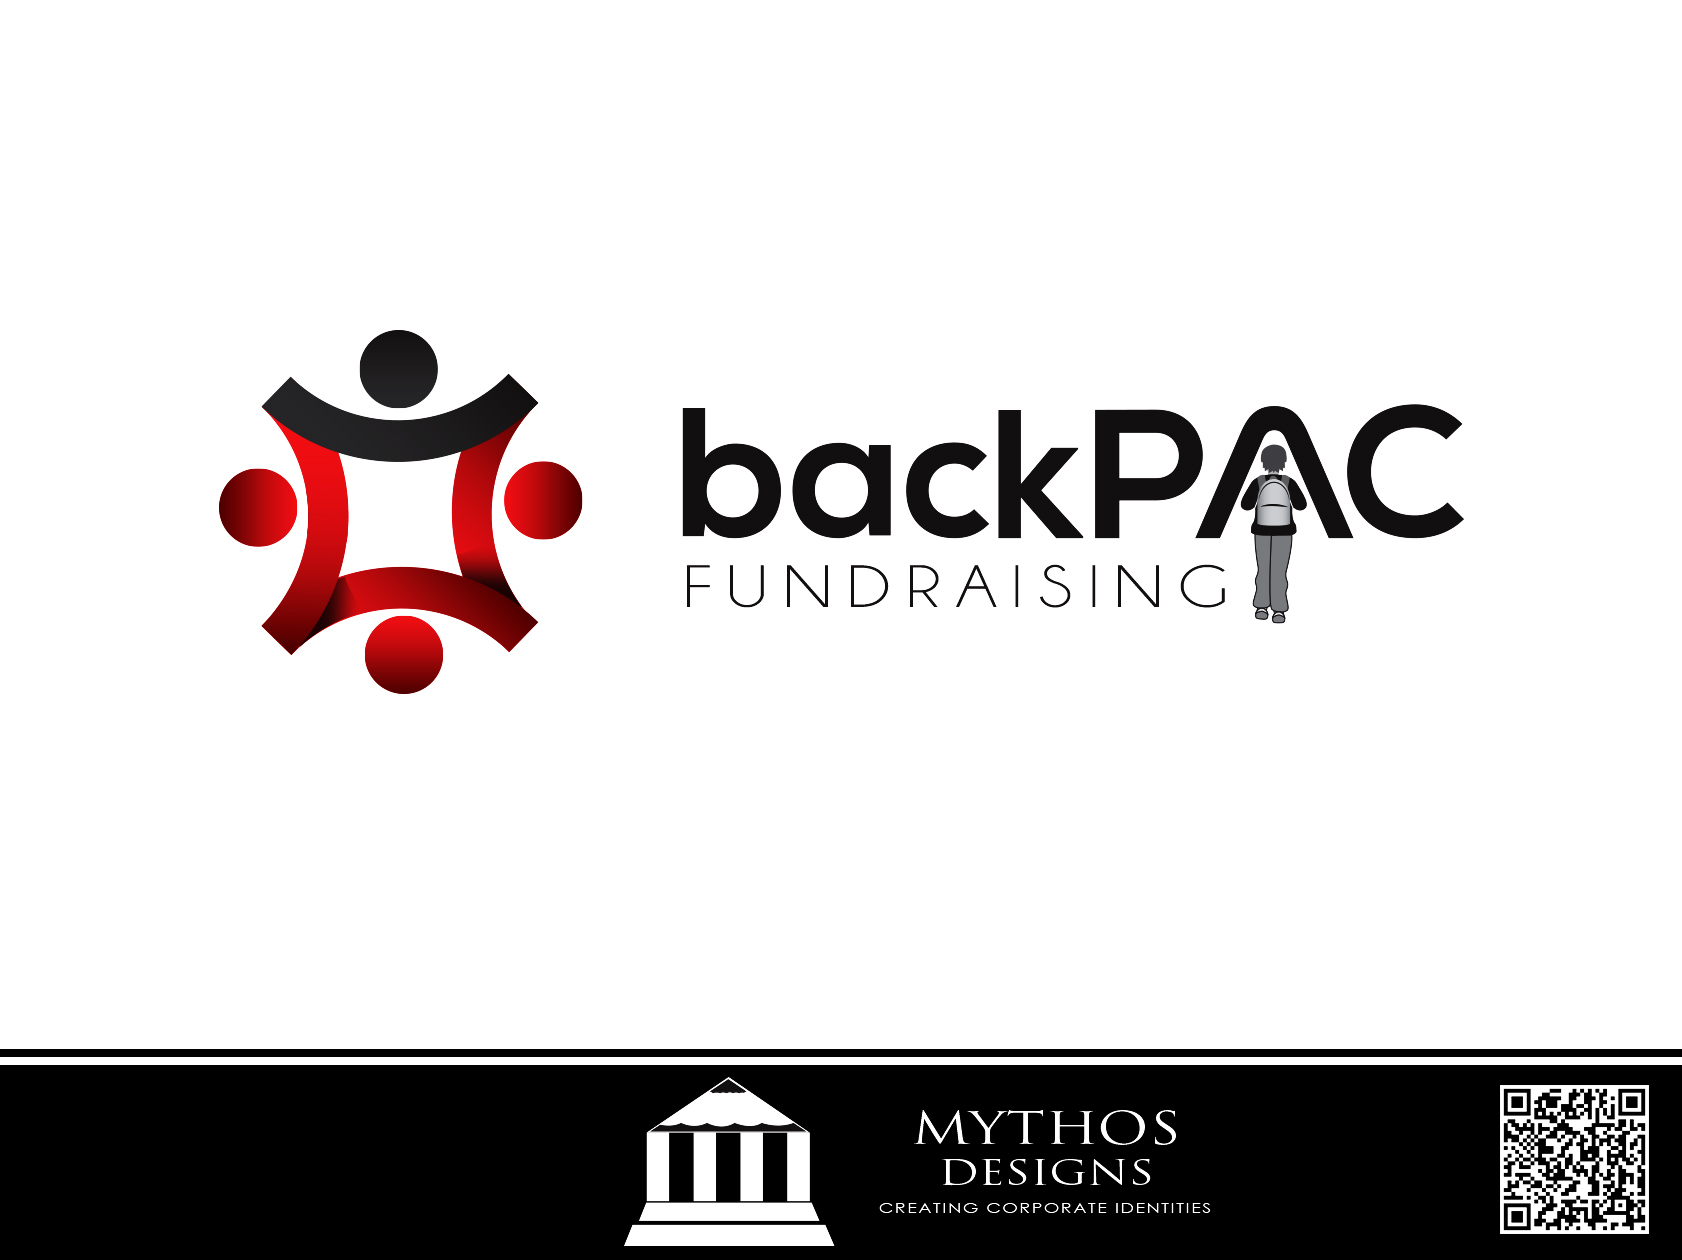 Logo Design by Mythos Designs - Entry No. 17 in the Logo Design Contest Imaginative Logo Design for BackPAC Fundraising.